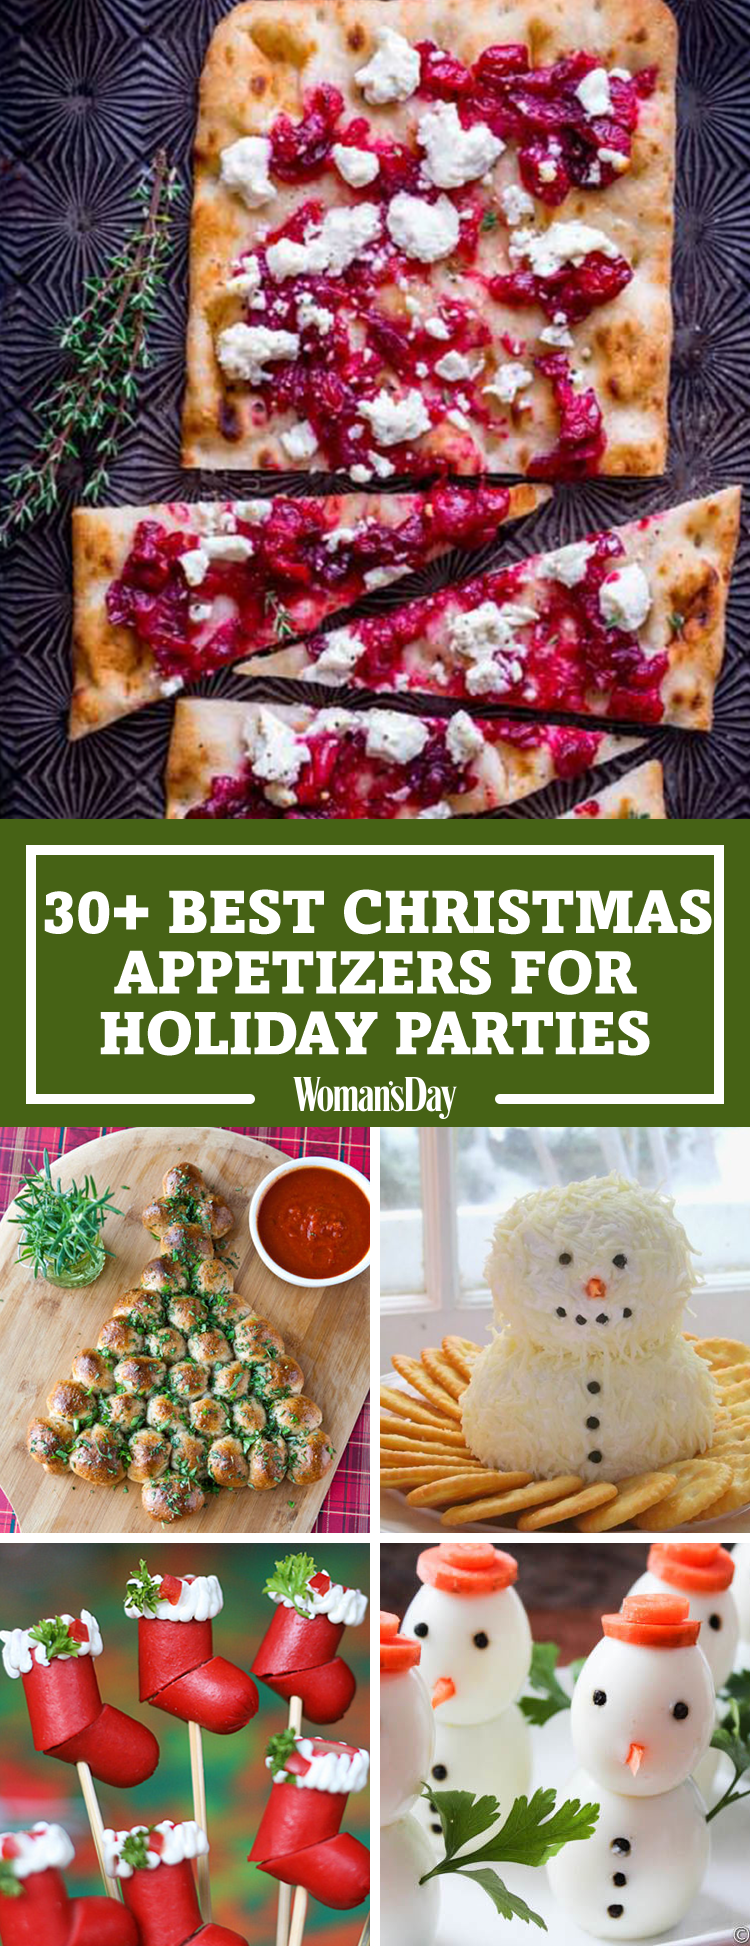 Christmas Appetizer Party Ideas Part - 43: 30+ Easy Christmas Party Appetizers - Best Recipes For Holiday Appetizers